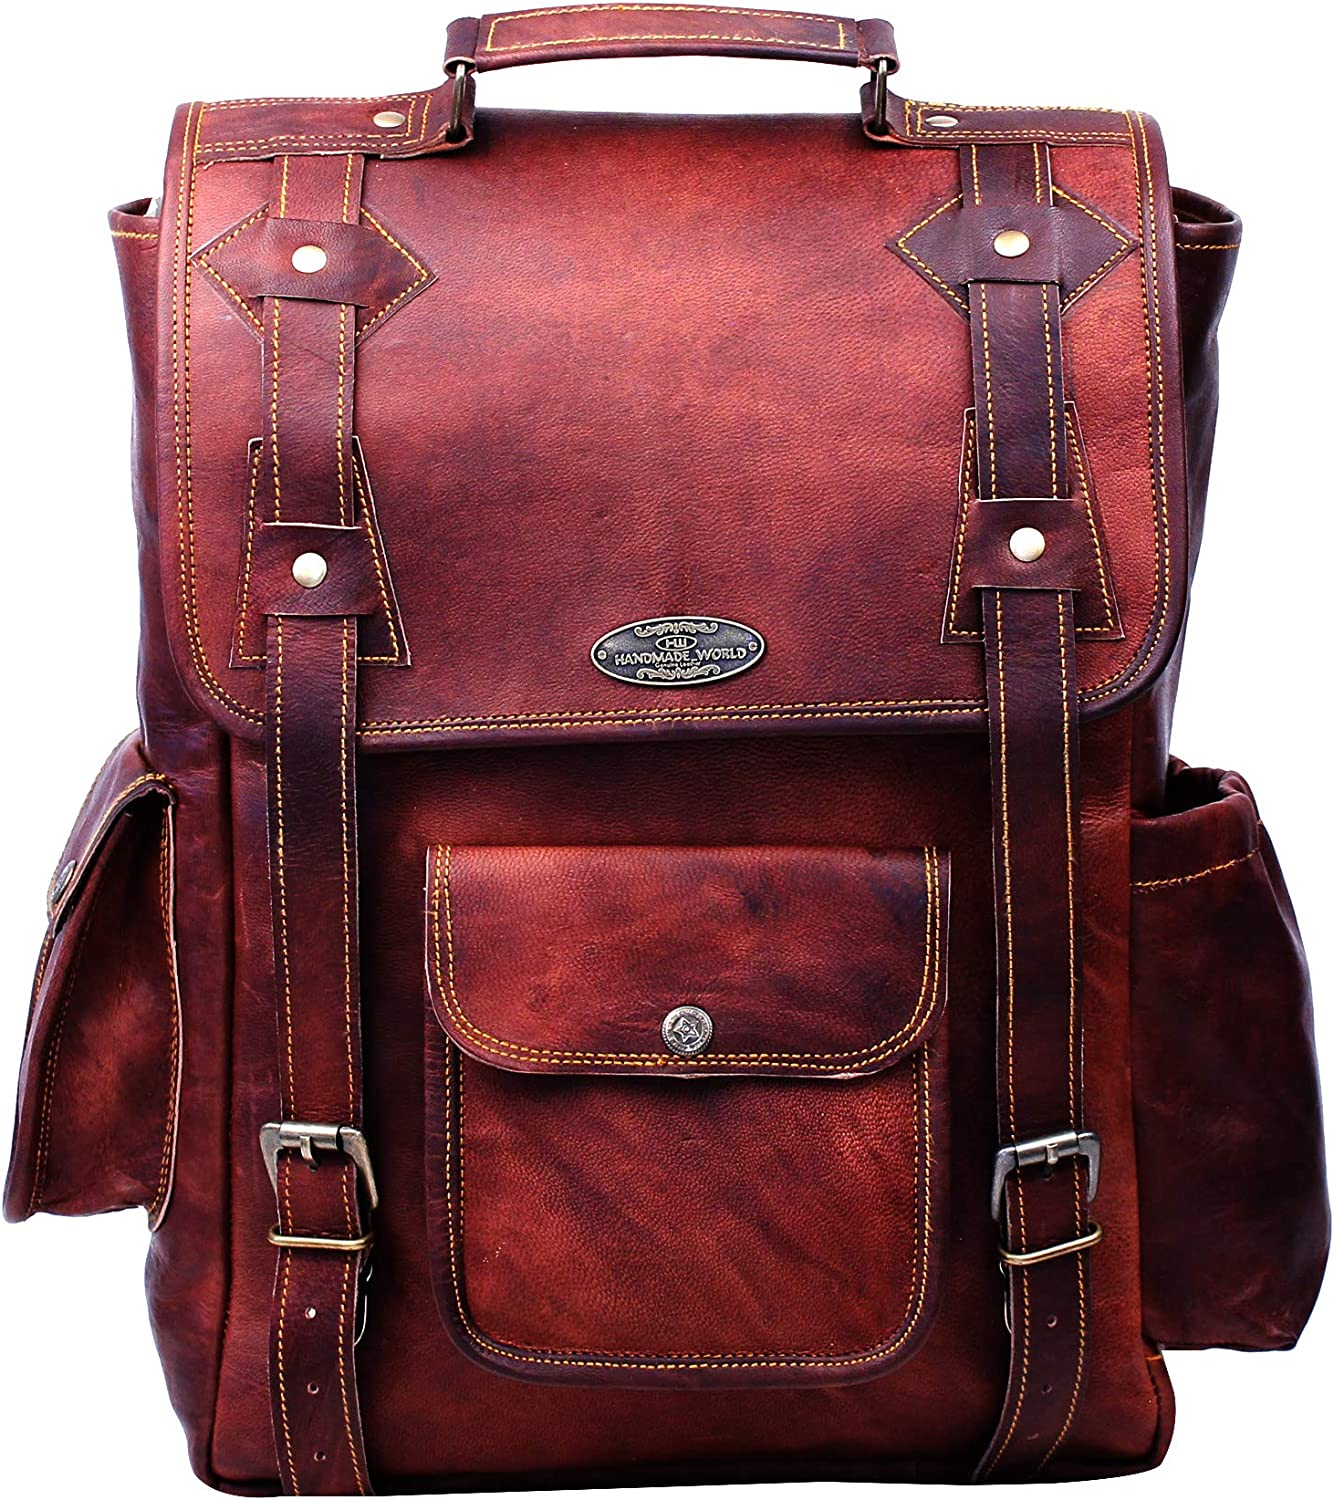 Handmade 16 Inch Brown Leather Backpack For Men Vintage Easy Open Push Lock Genuine leather backpack for women | Leather laptop backpack for men and women with padded Laptop Compartment By HULSH